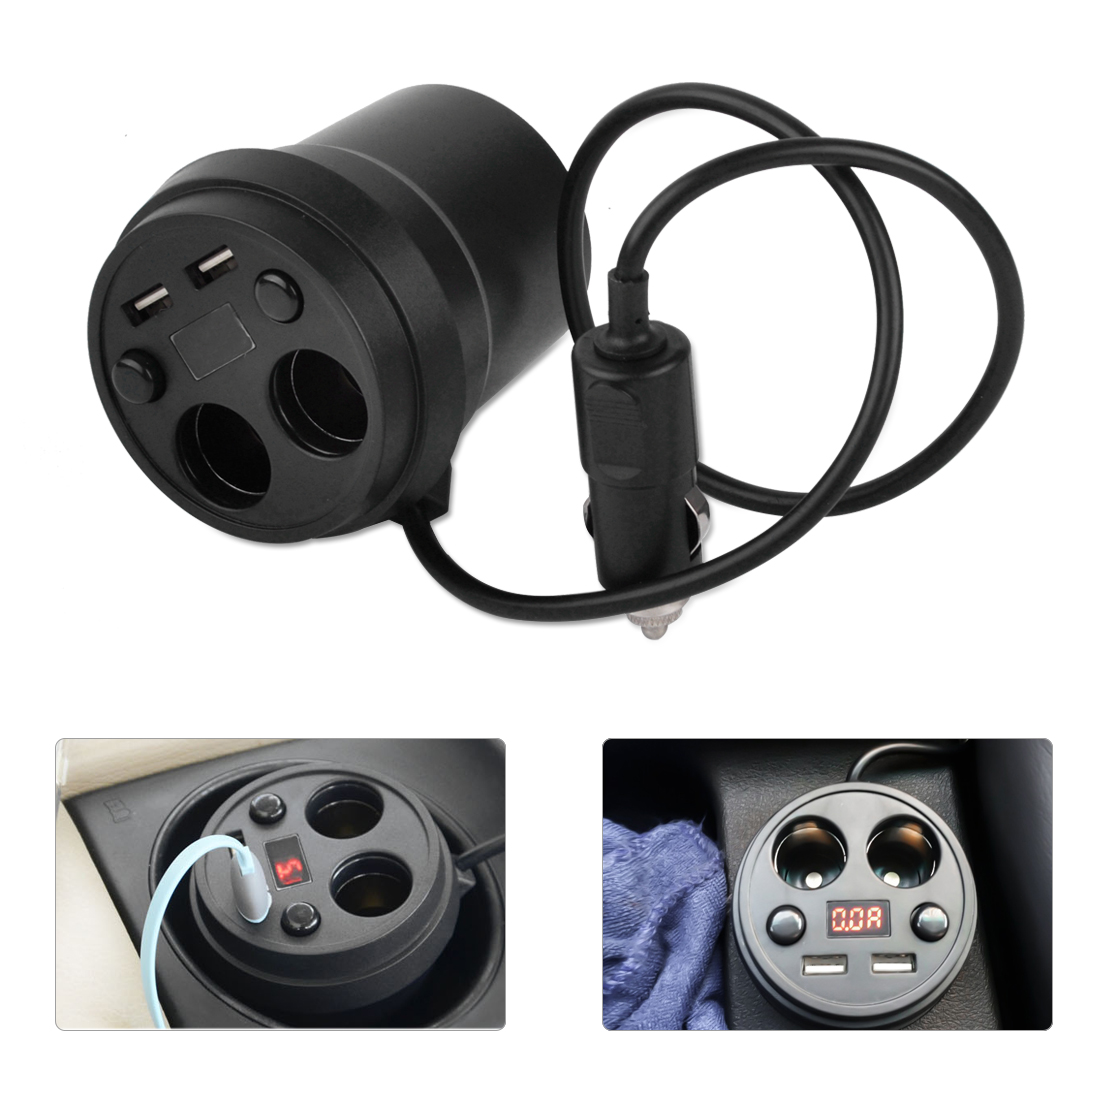 CITALL Voiture 2 Socket Allume-cigare Double USB Tension Puissance Chargeur Adaptateur tasse LED Affichage pour Ford Focus Audi A4 A6 Mazda 3 6